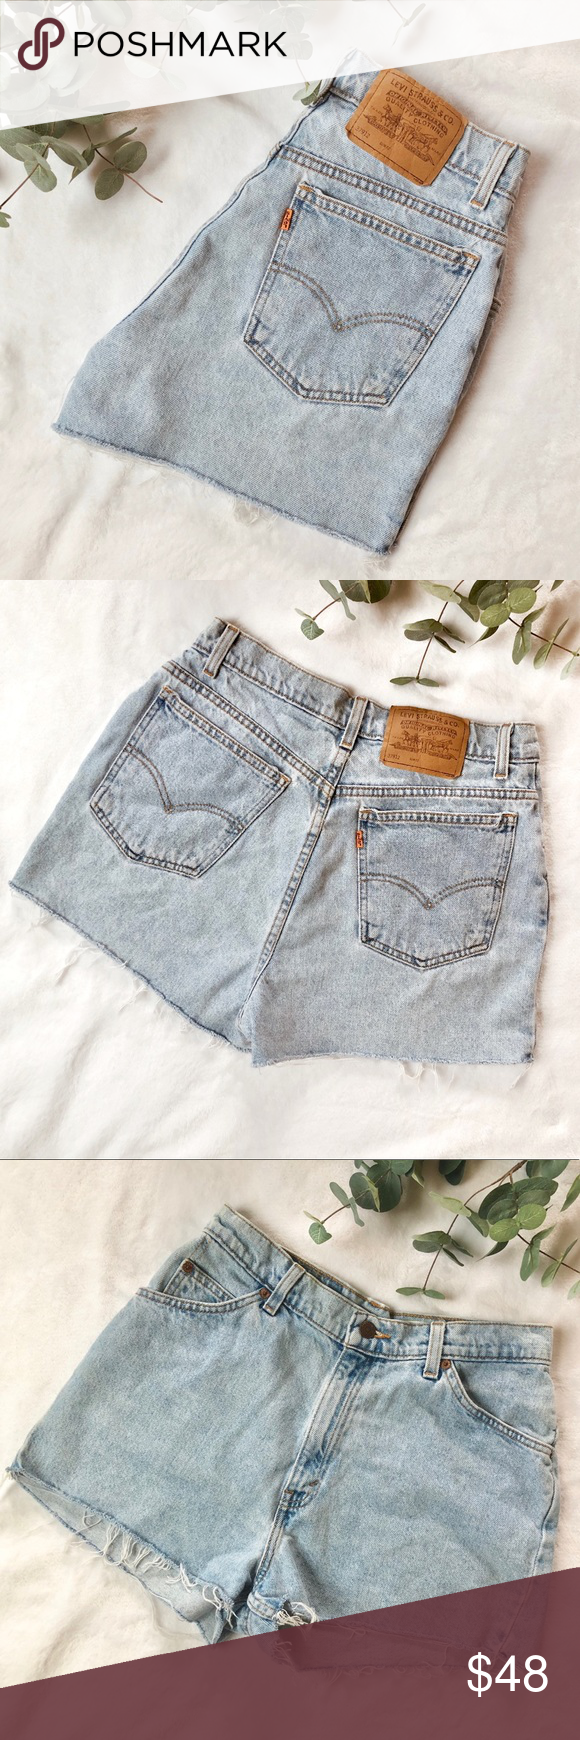 "Levi's • orange tab vintage denim cutoff shorts Levi's vintage orange tab high waist denim cutoff shorts. Light wash.   Size: 13 (read measurements for accurate sizing)  Excellent condition!   Measurements (layed flat) Waist: 14.5"" Rise: 12"" Levi's Shorts Jean Shorts #denimcutoffshorts"